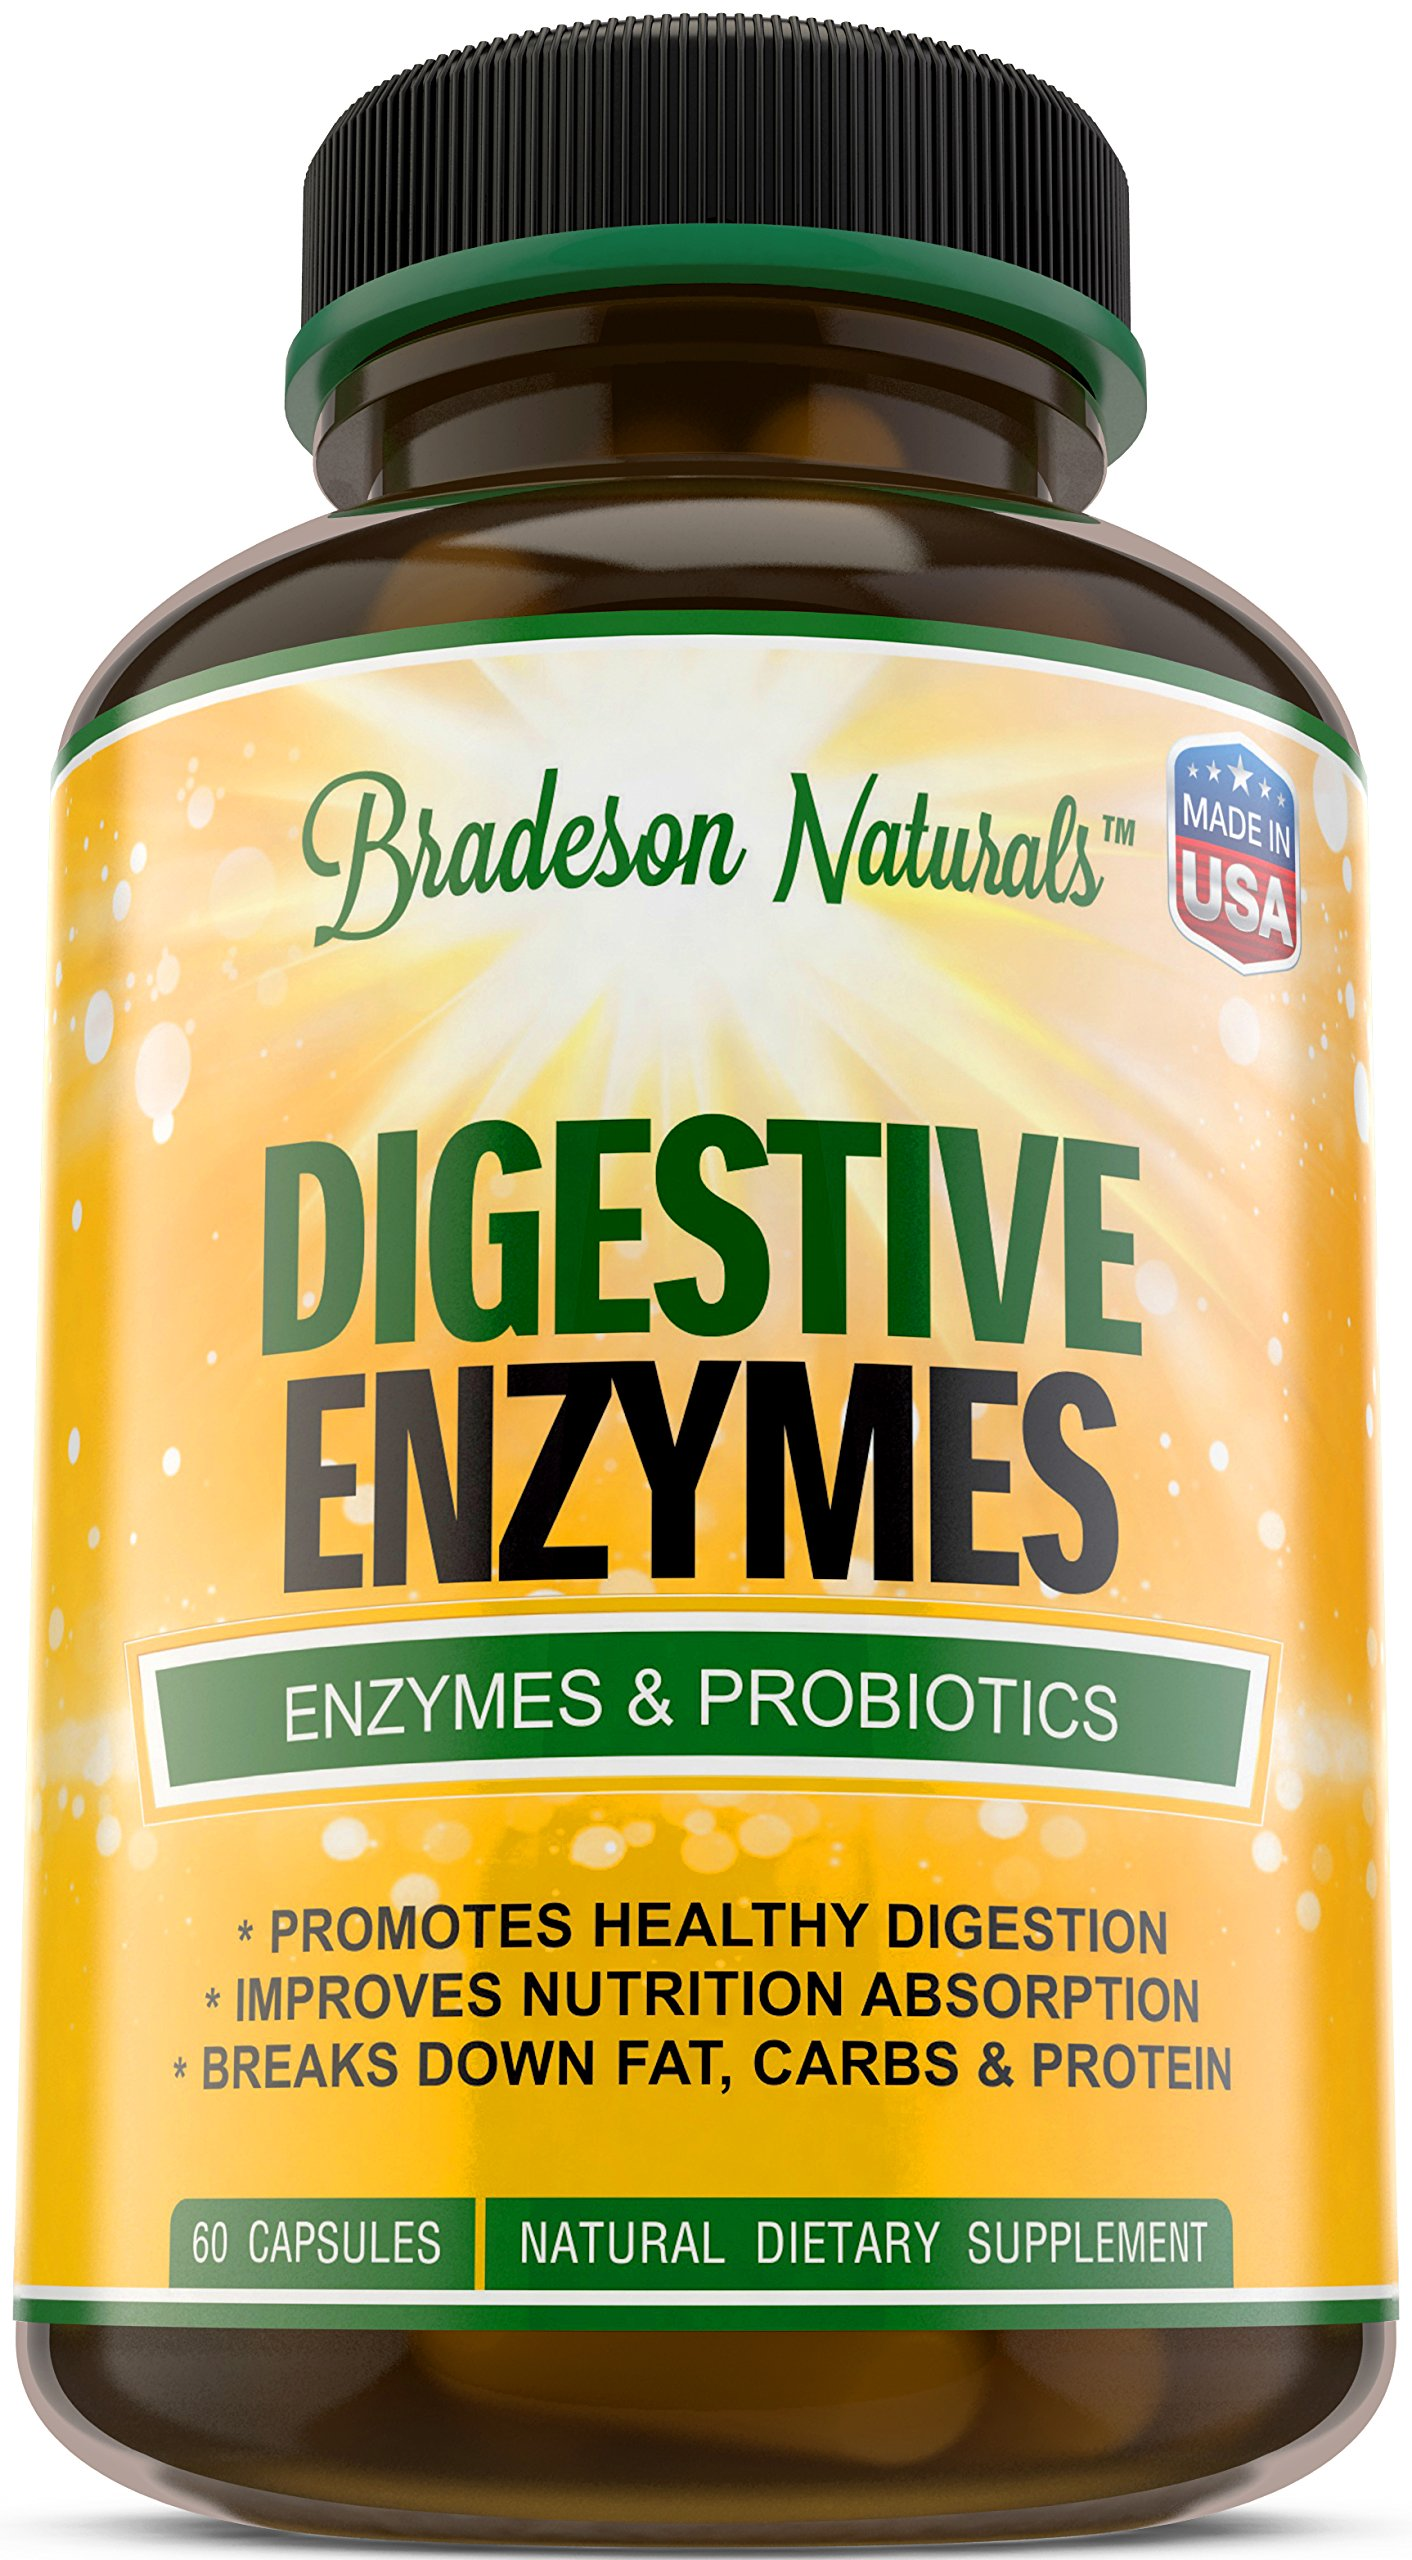 Digestive Enzymes by Bradeson Naturals - Enzymes & Probiotics, Natural Dietary Supplement, 60 Capsules